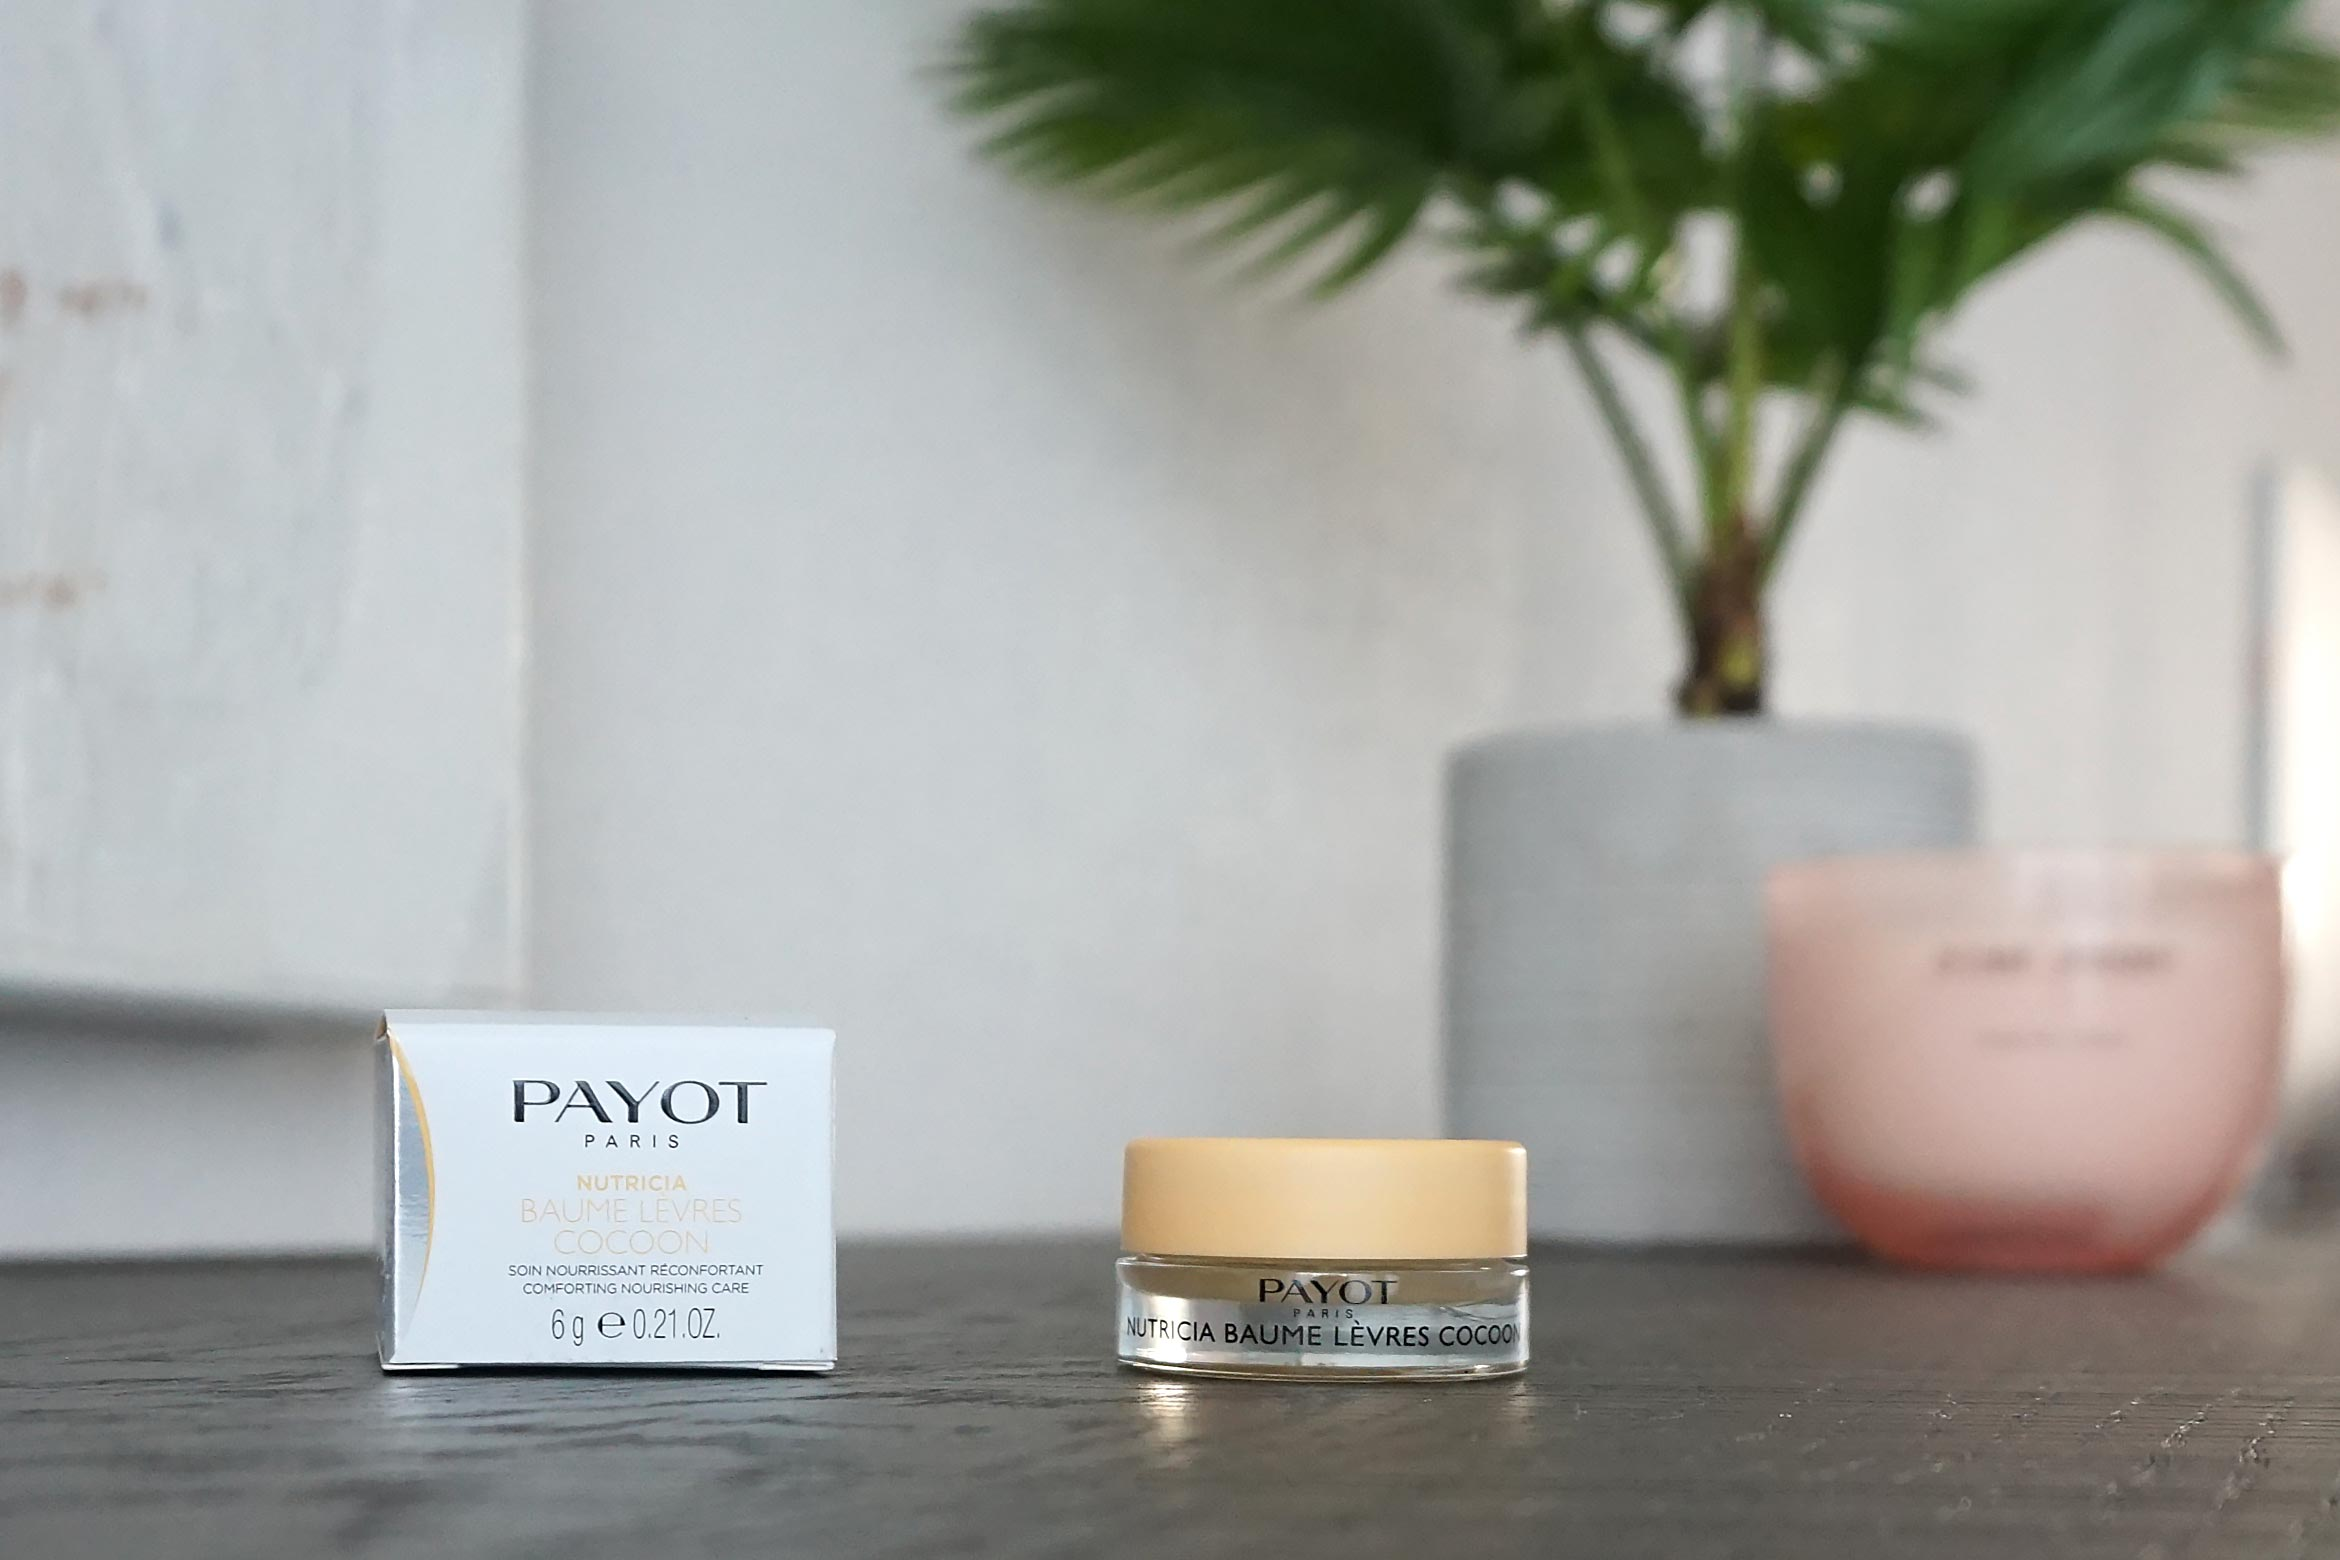 payot baume levres cocoon review-1